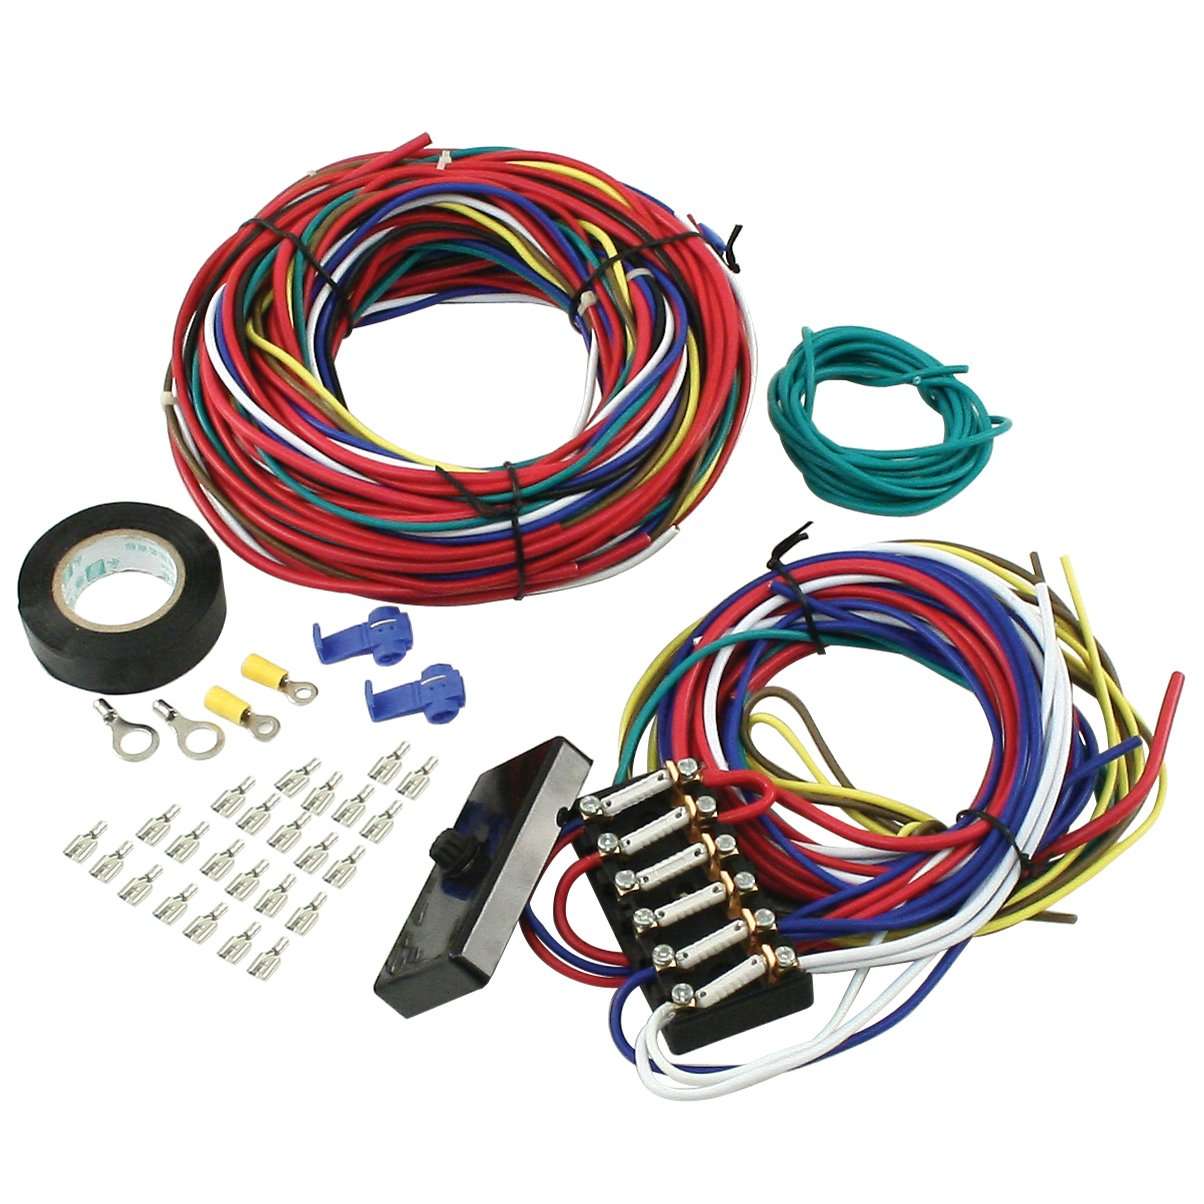 712Fyt3MSiL._SL1204_ amazon com empi 00 9466 0 wire loom kit, vw buggy, sand rail vw dune buggy wiring harness at cos-gaming.co